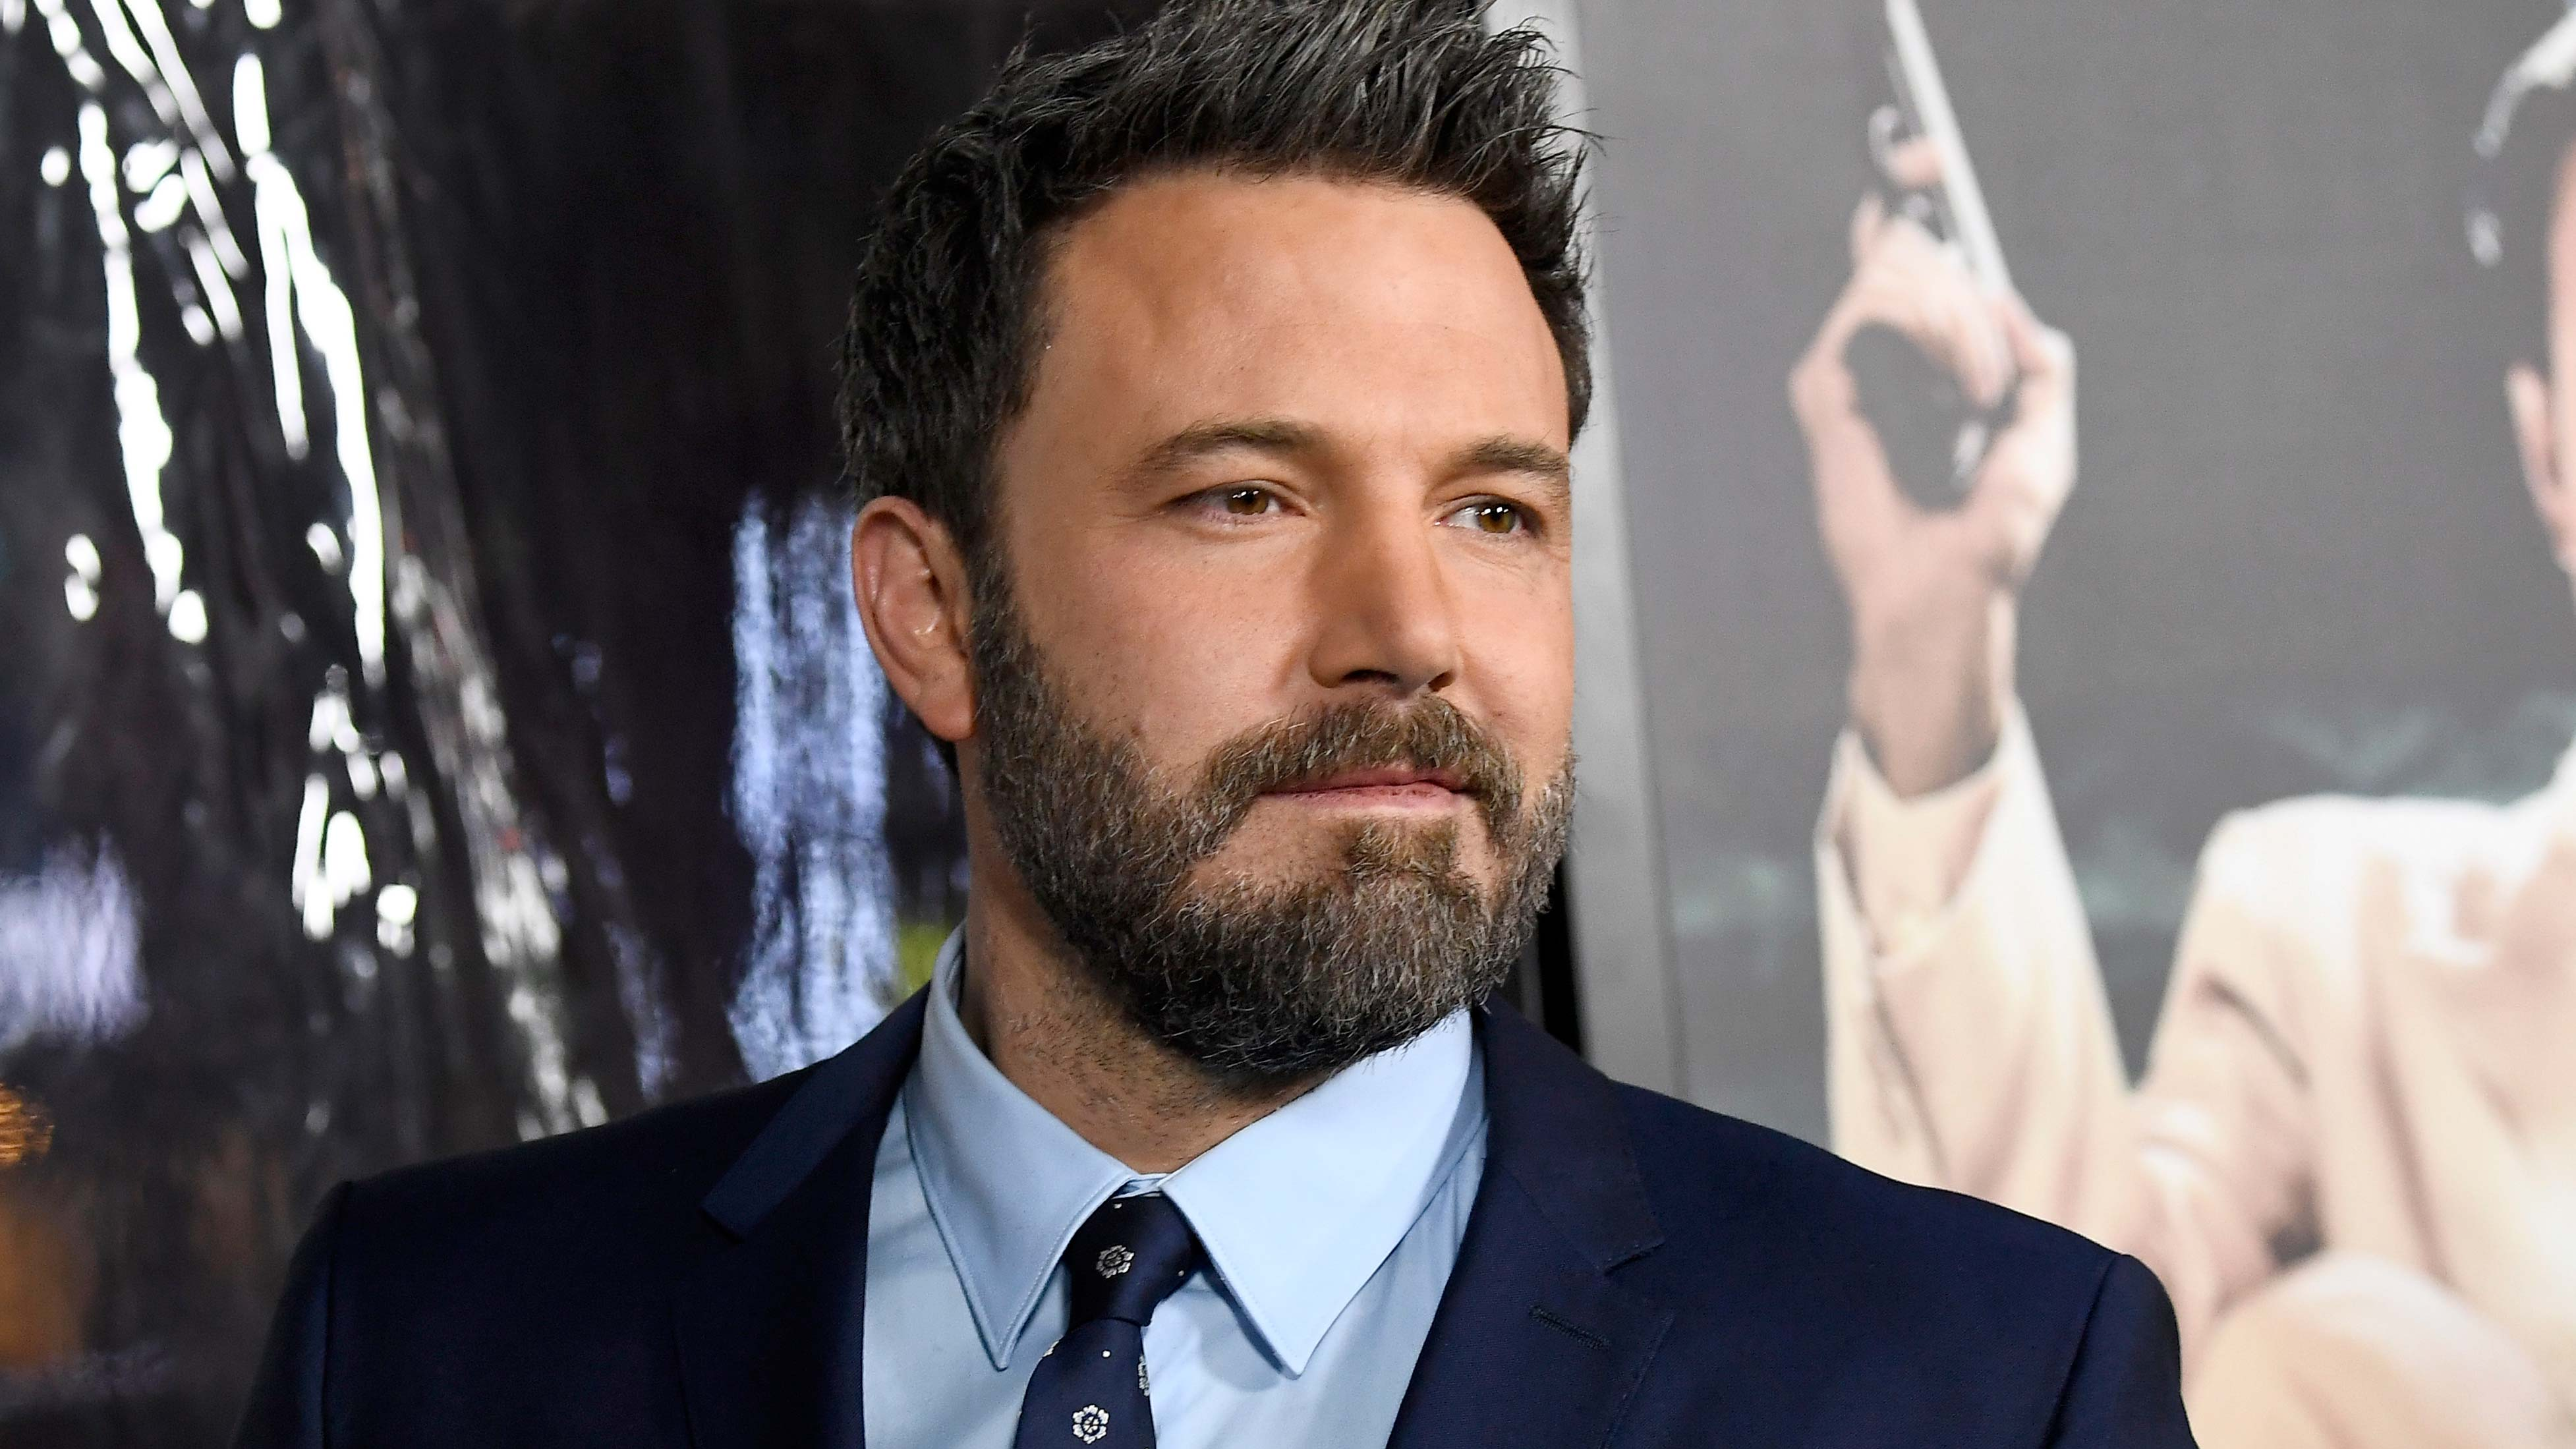 Ben Affleck Shows Off His Massive Back Tattoo For The First Time